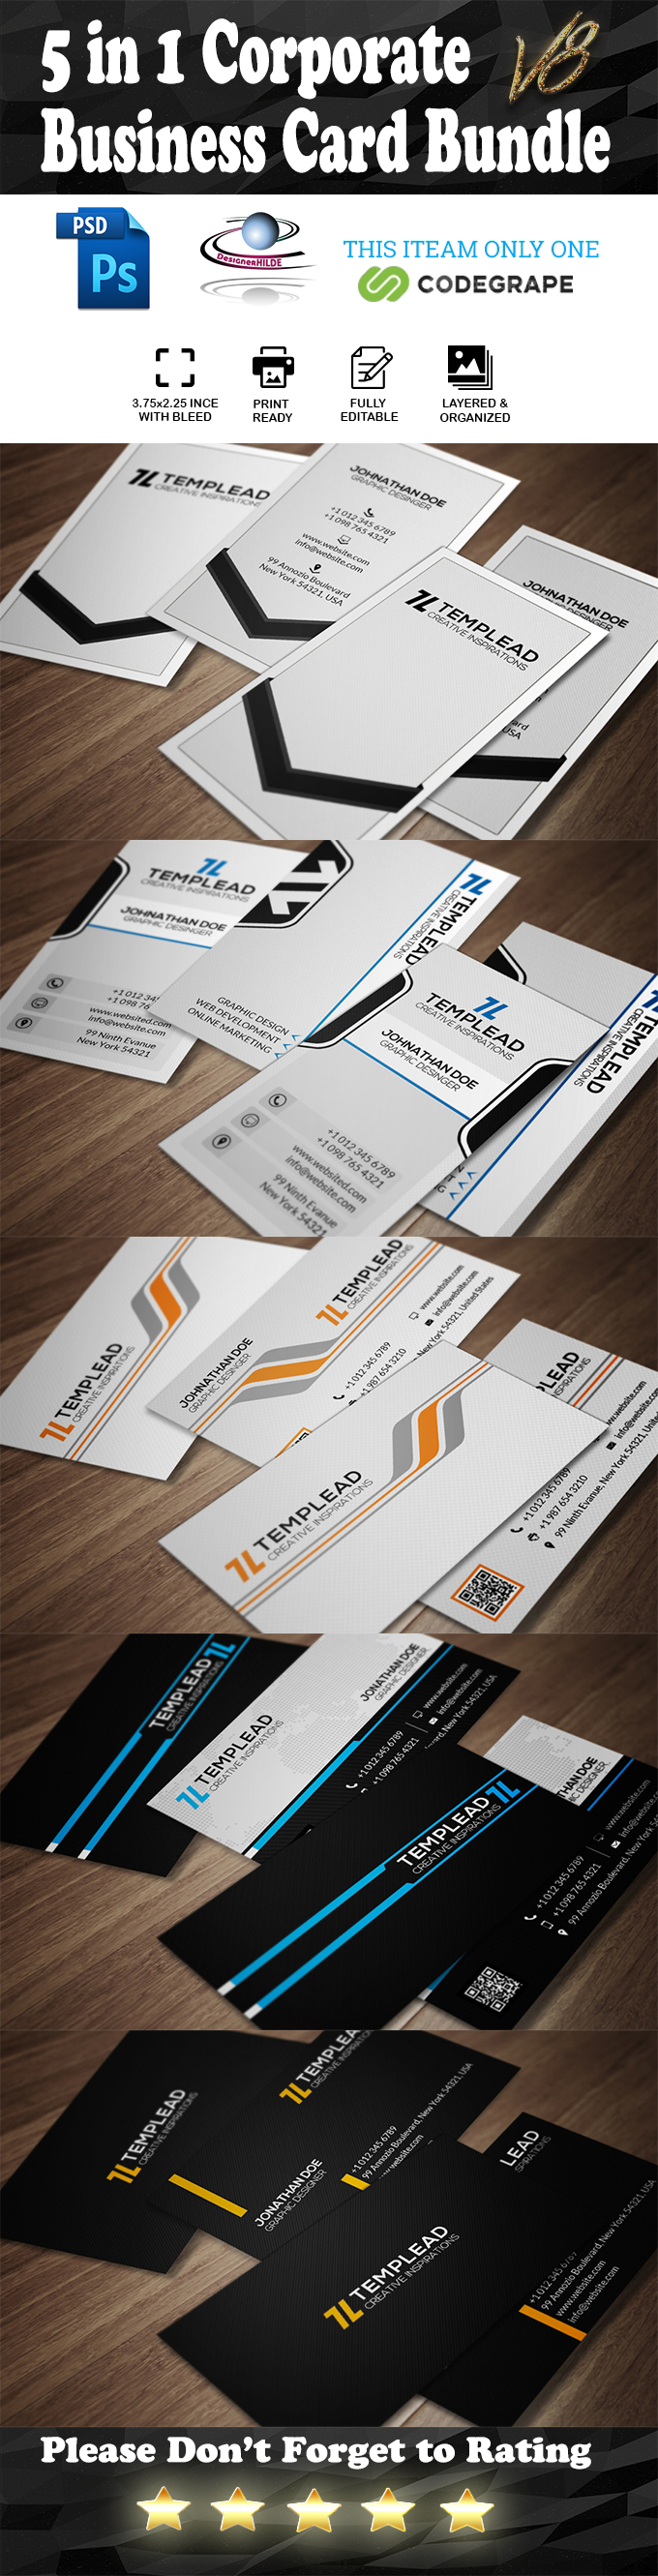 5 in 1 Corporate Business Card Bundle V.8